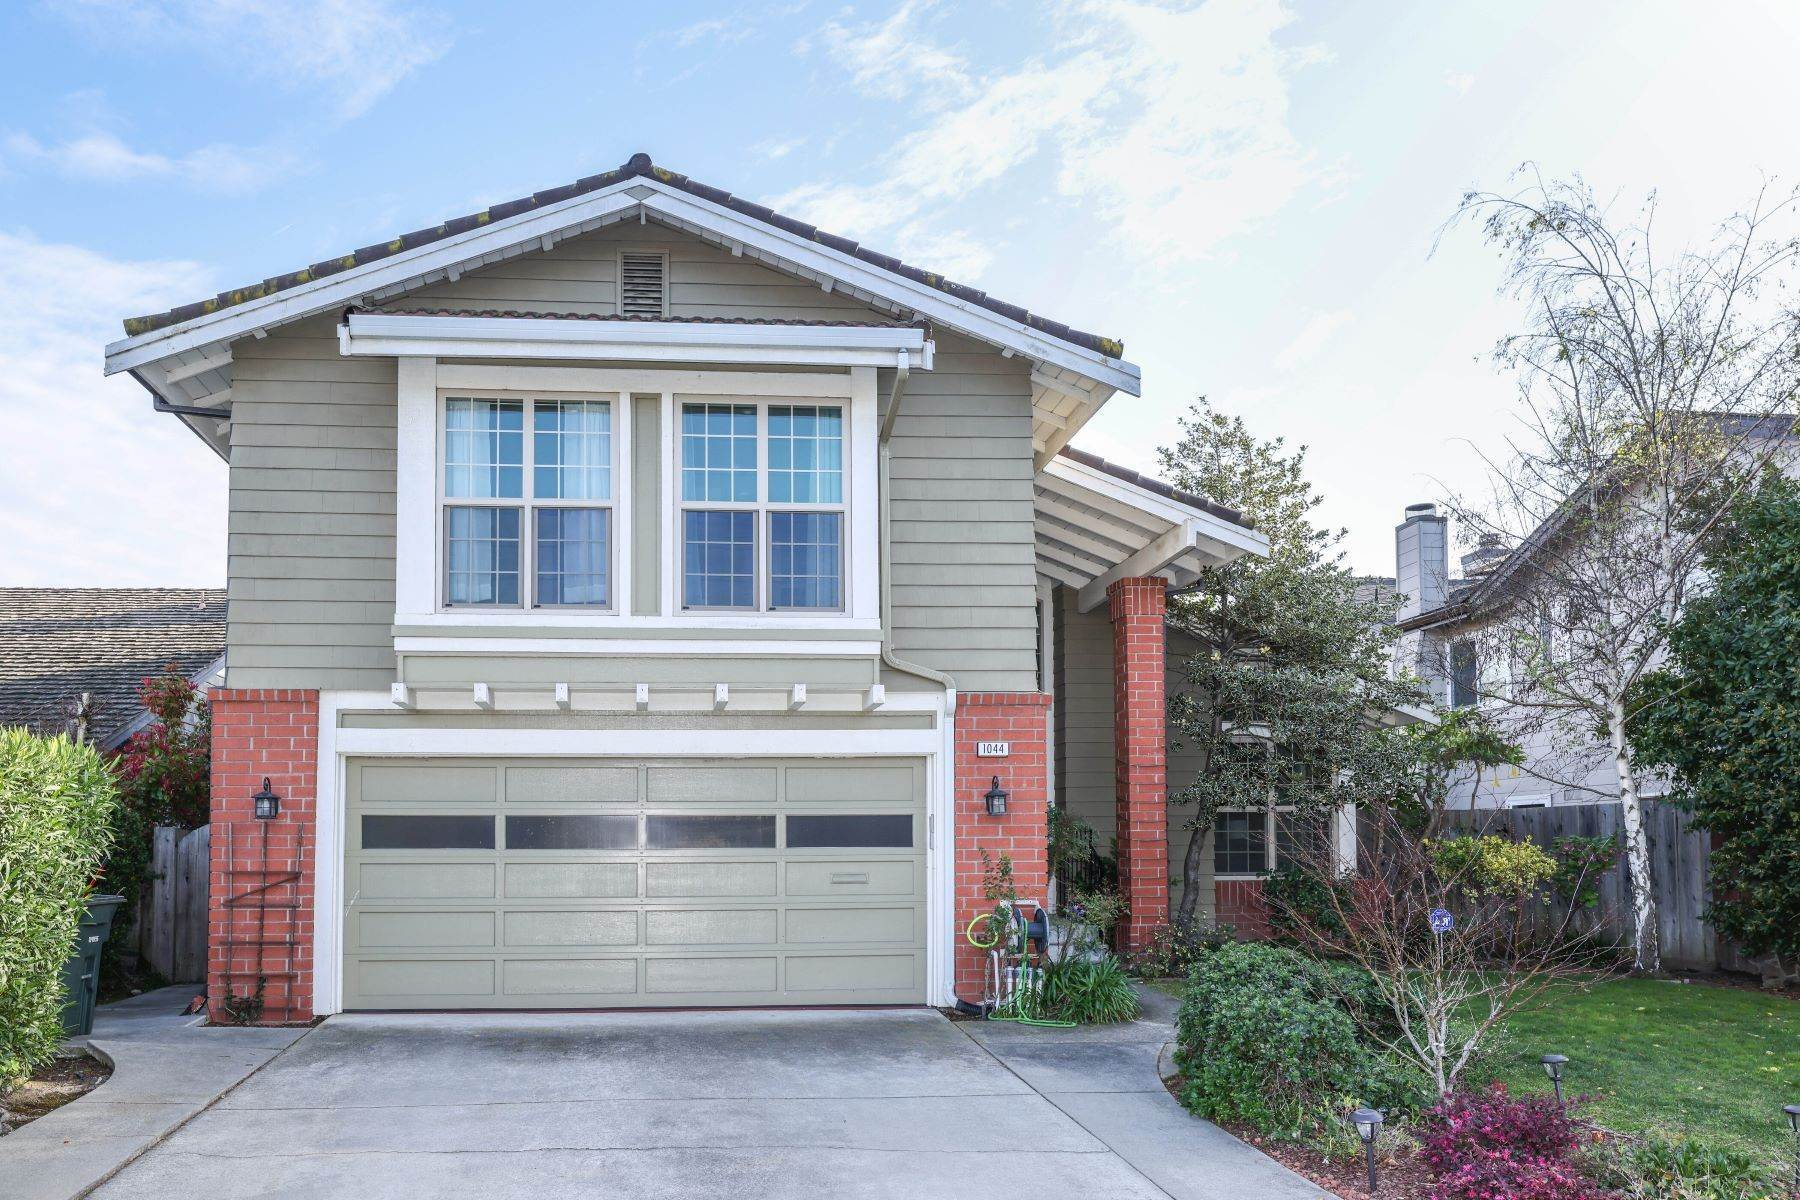 Single Family Homes for Sale at Stunning Home on One of Foster City's Most Desirable Streets 1044 Windjammer Circle Foster City, California 94404 United States